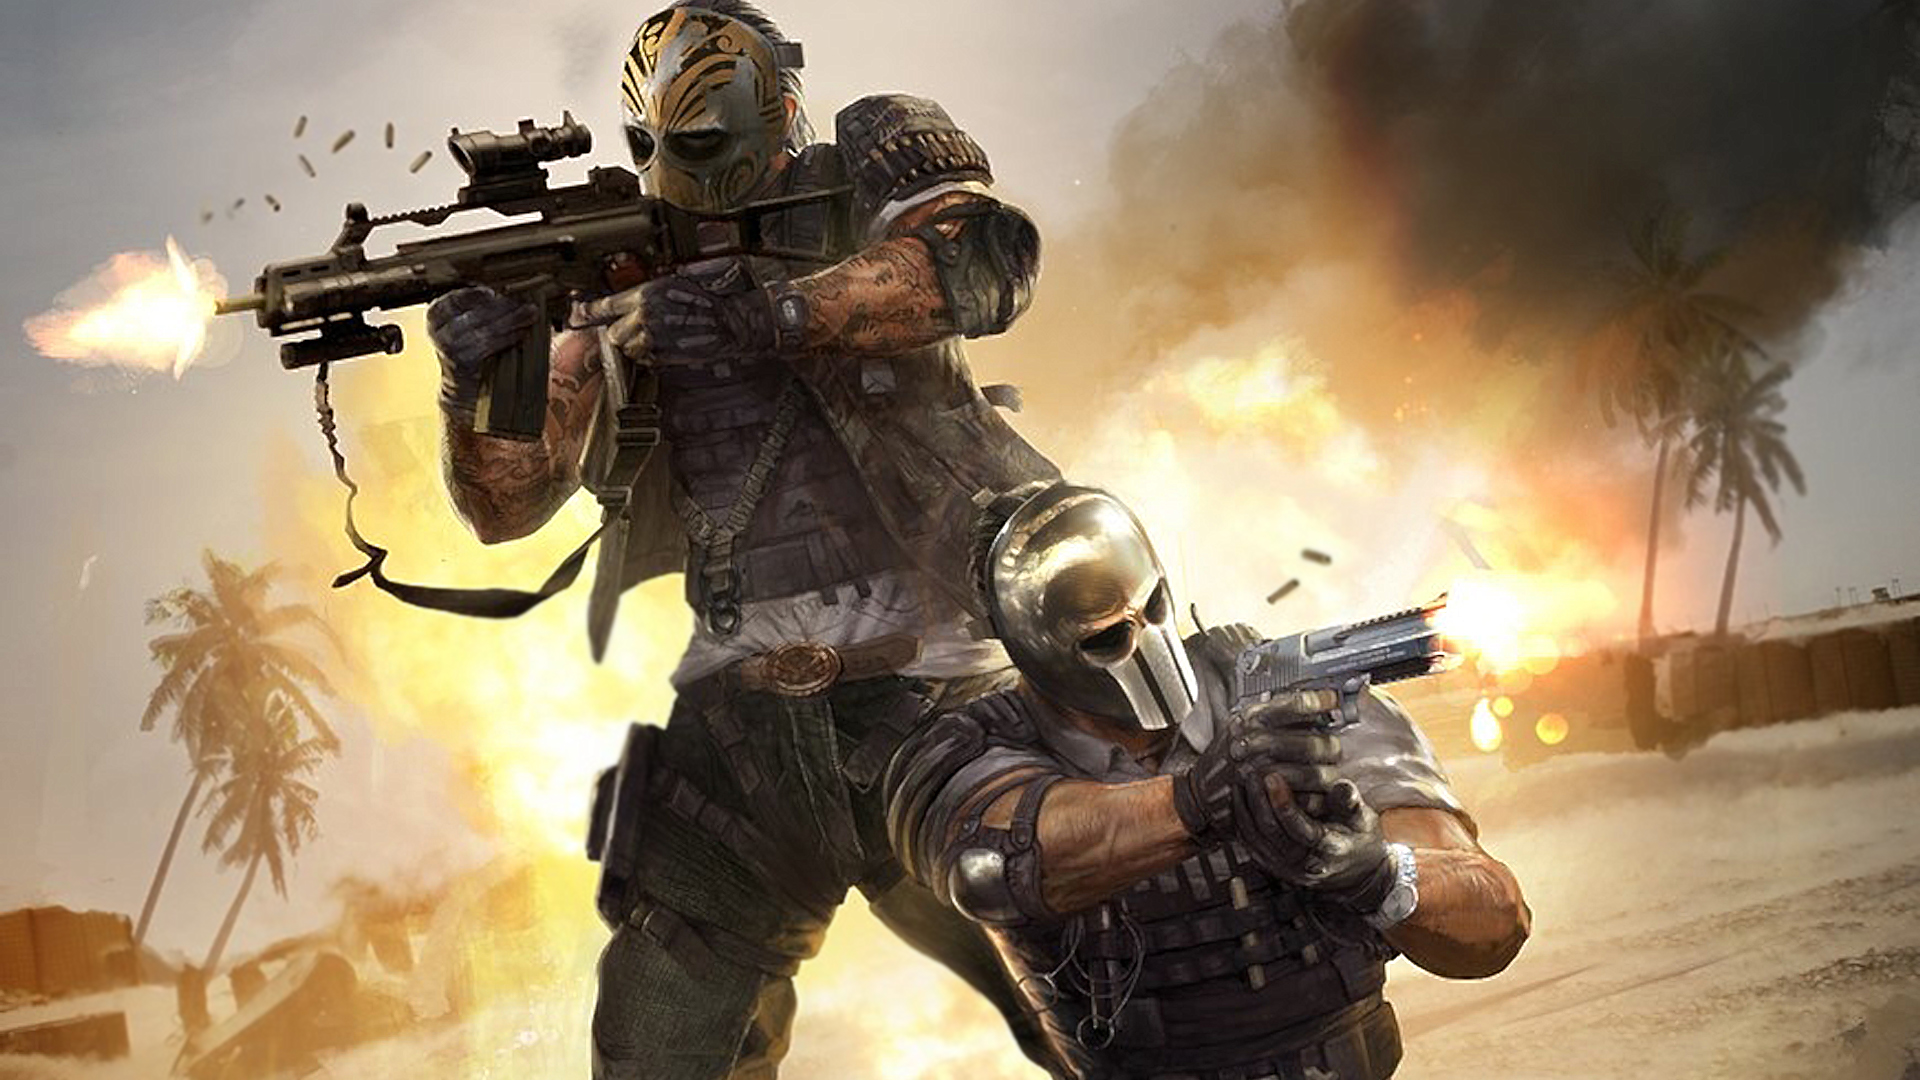 Killzone Shadow Fall Wallpaper 1080p 14 Army Of Two The Devil S Cartel Hd Wallpapers